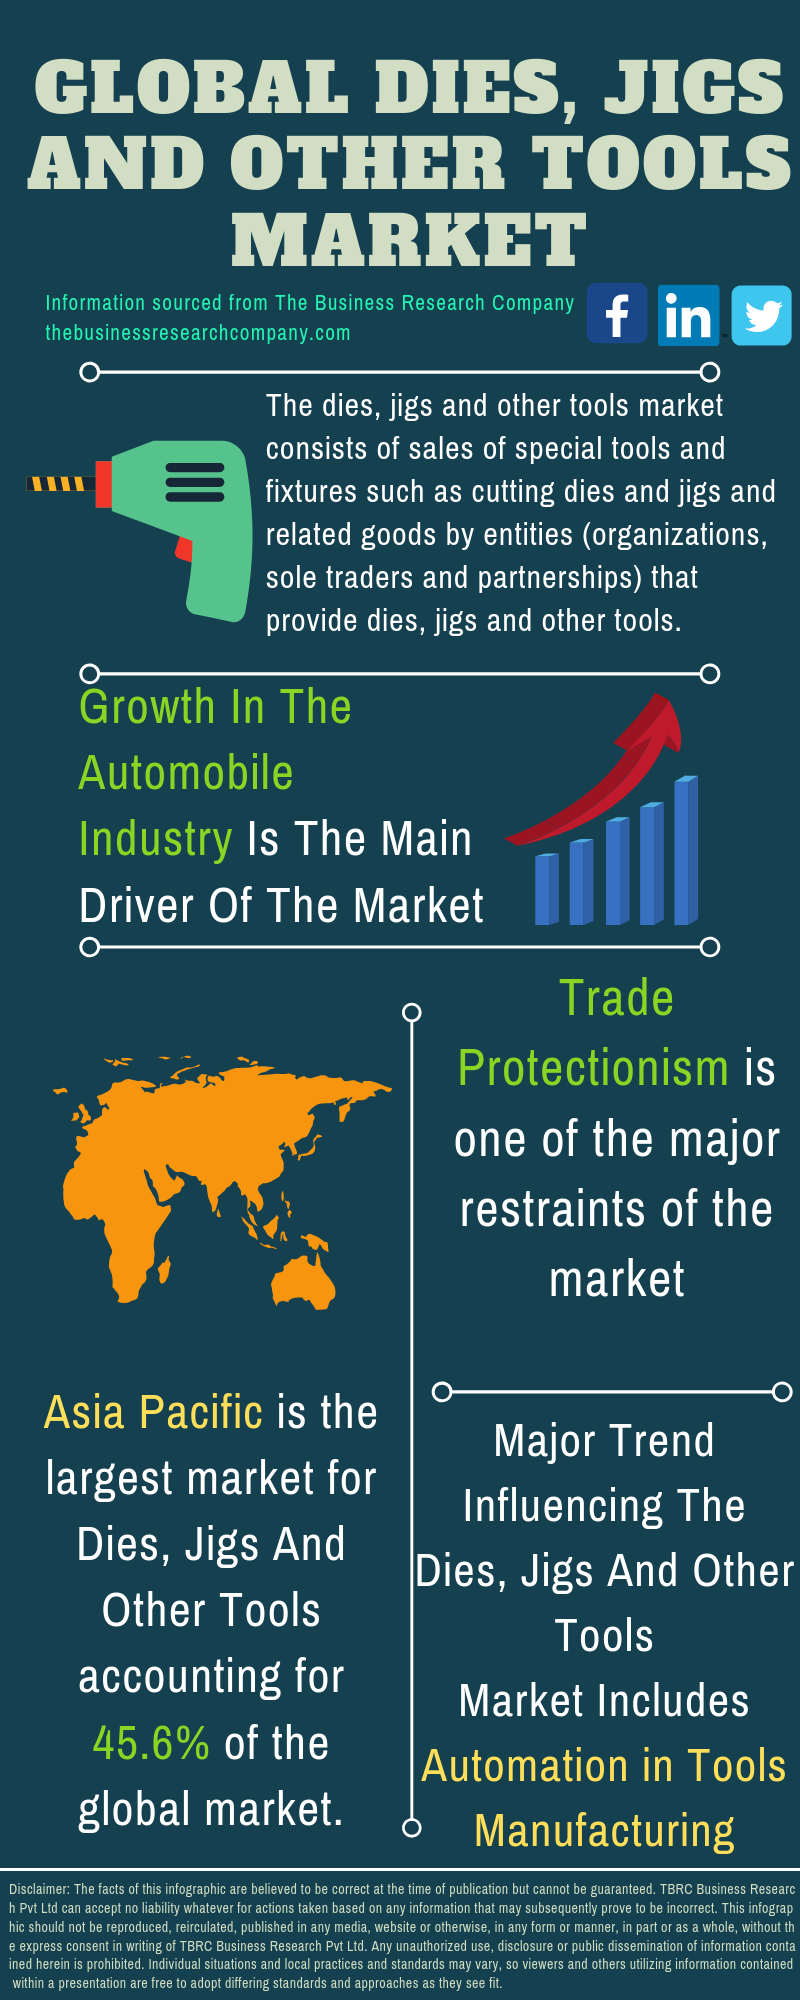 Dies, Jigs And Other Tools Market